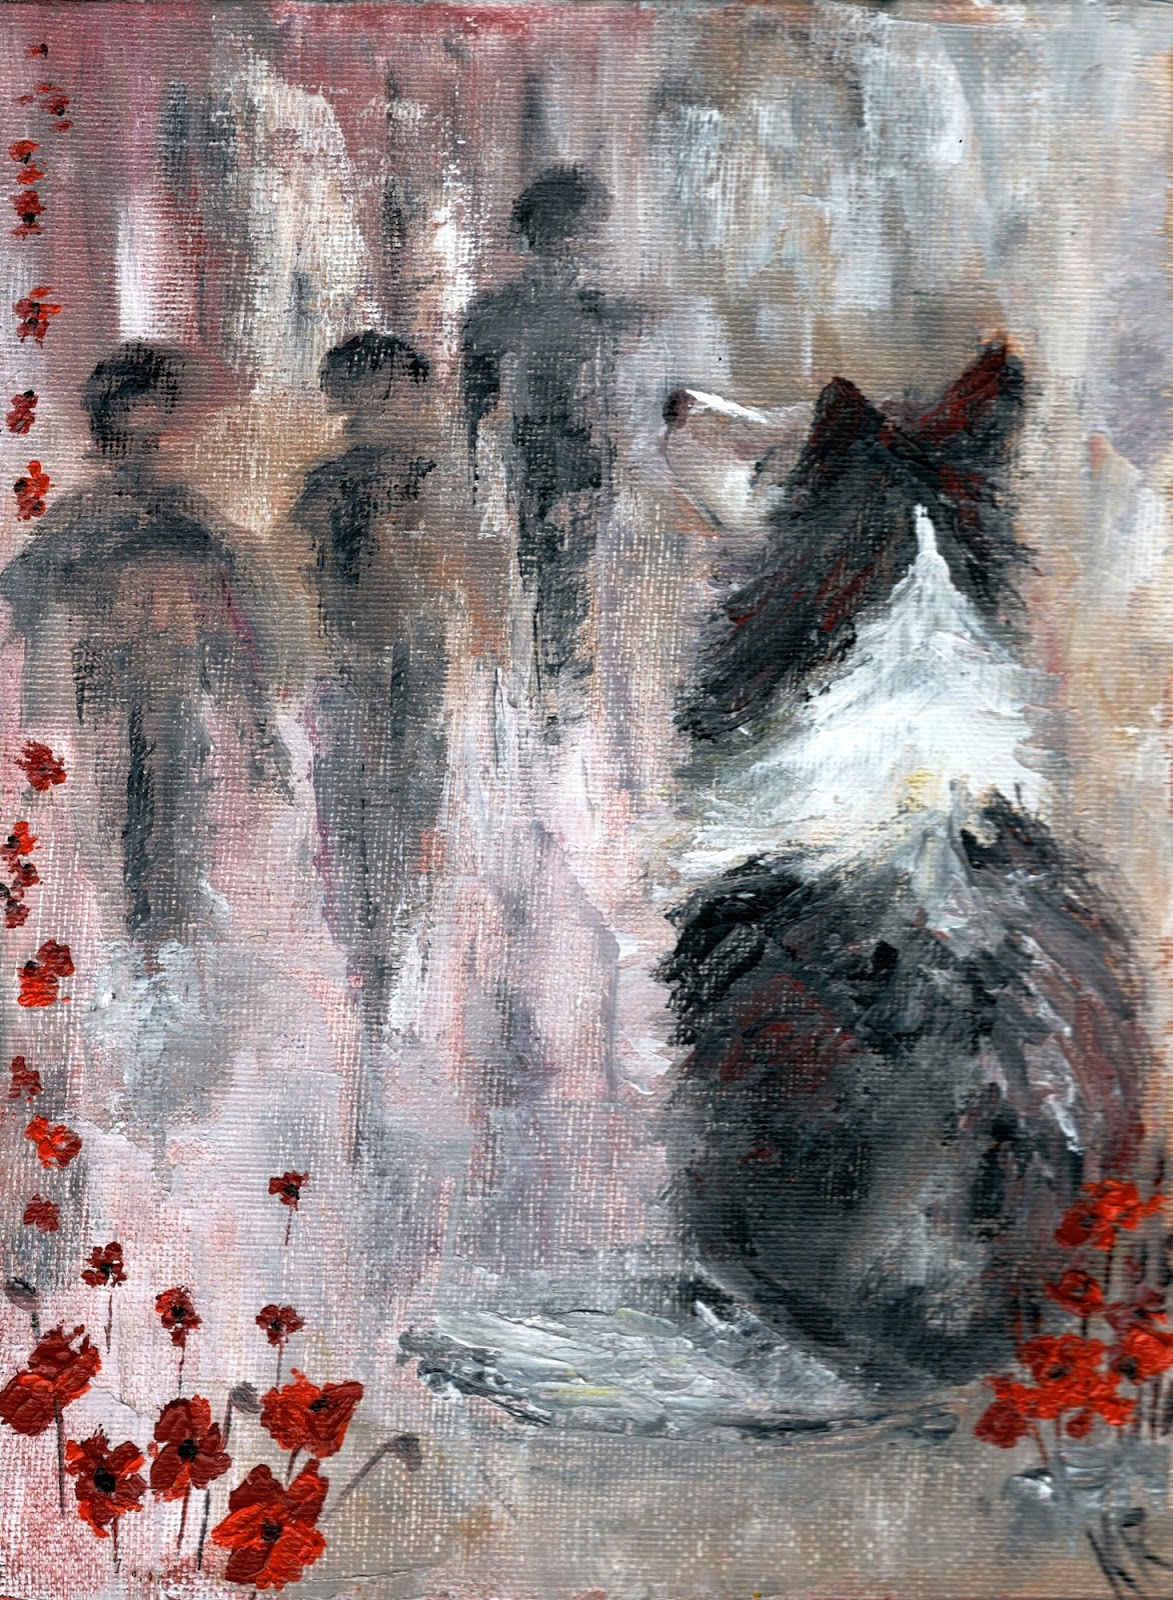 Remembrance Day (Veteran's Day) painting. Oil painting of poppies and dog